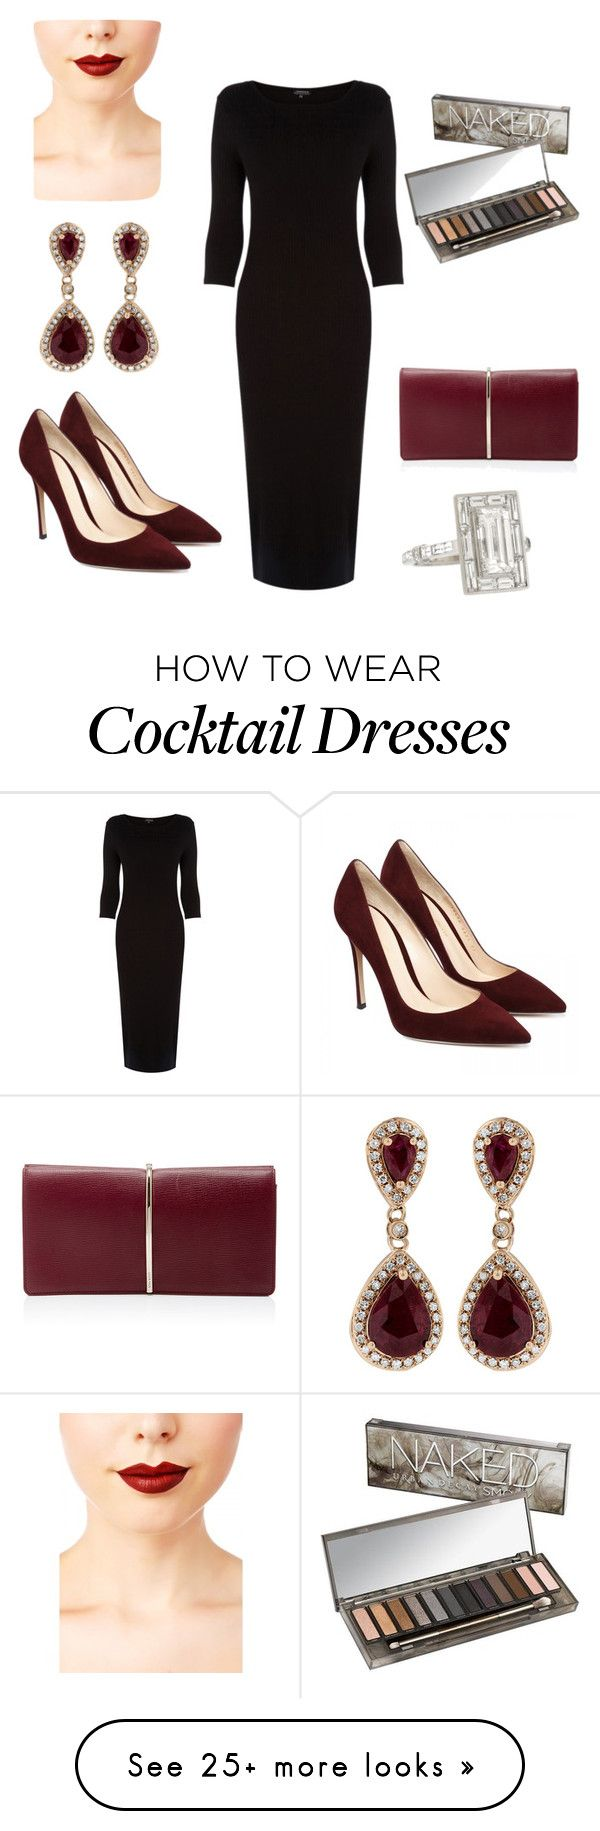 """""""Christmas cocktail"""" by clmccallum on Polyvore featuring Warehouse, Effy Jewelry, Nina Ricci, Jeffree Star and Urban Decay"""